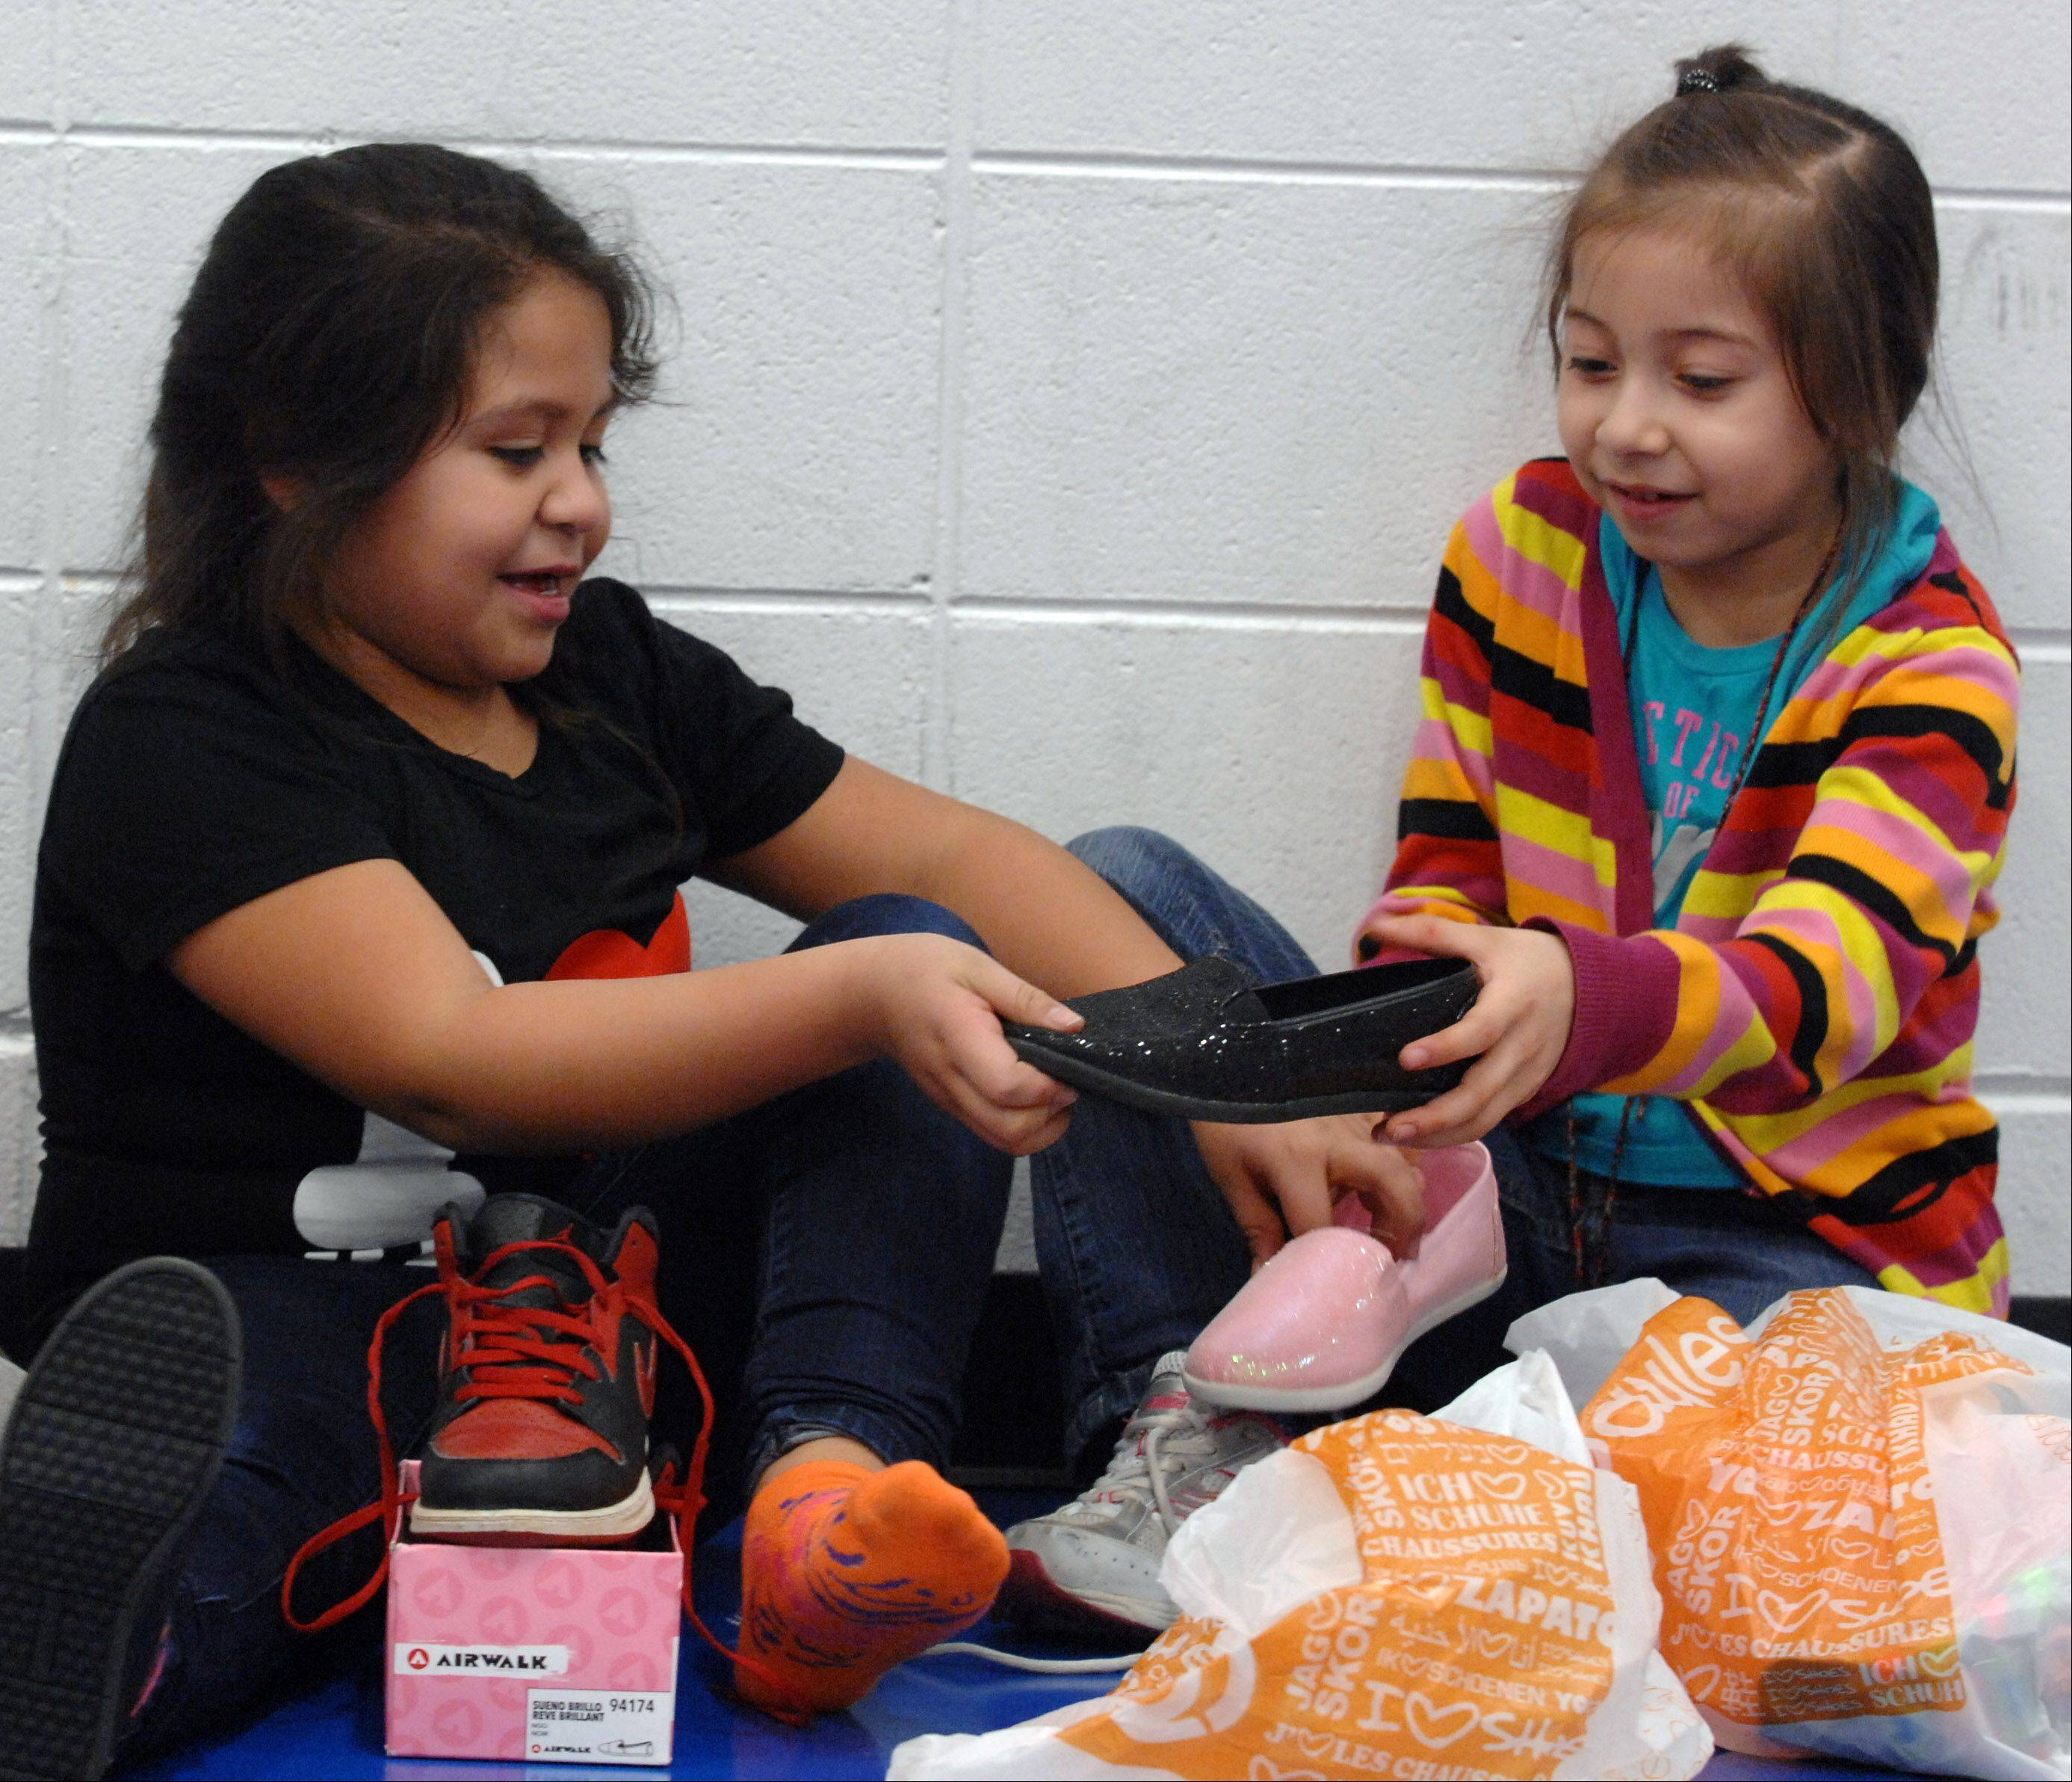 Perla Martinez, 6, left, and Daisy Silva, 6, check out each other's new shoes that they received from the Boys and Girls Club of Dundee Township at Golfview Elementary School in Carpentersville Thursday. Payless Shoes donated 1.2 million shoes around the country, including about 300 to this branch of the Boys and Girls Club, who then passed them out at two locations.